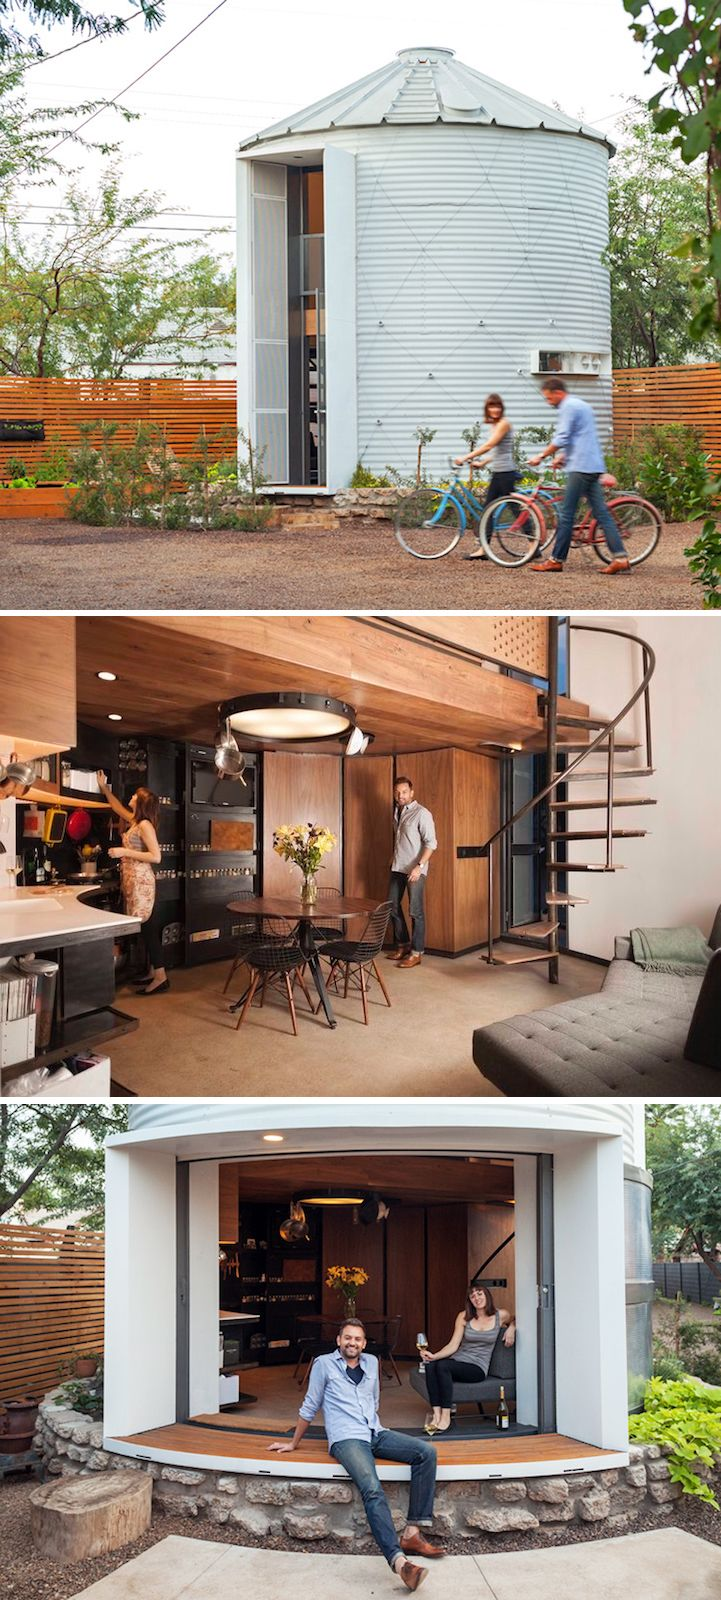 Architect Christoph Kaiser Turned A 340 Square Foot Grain Silo Into Two Story Home For Him And His Wife